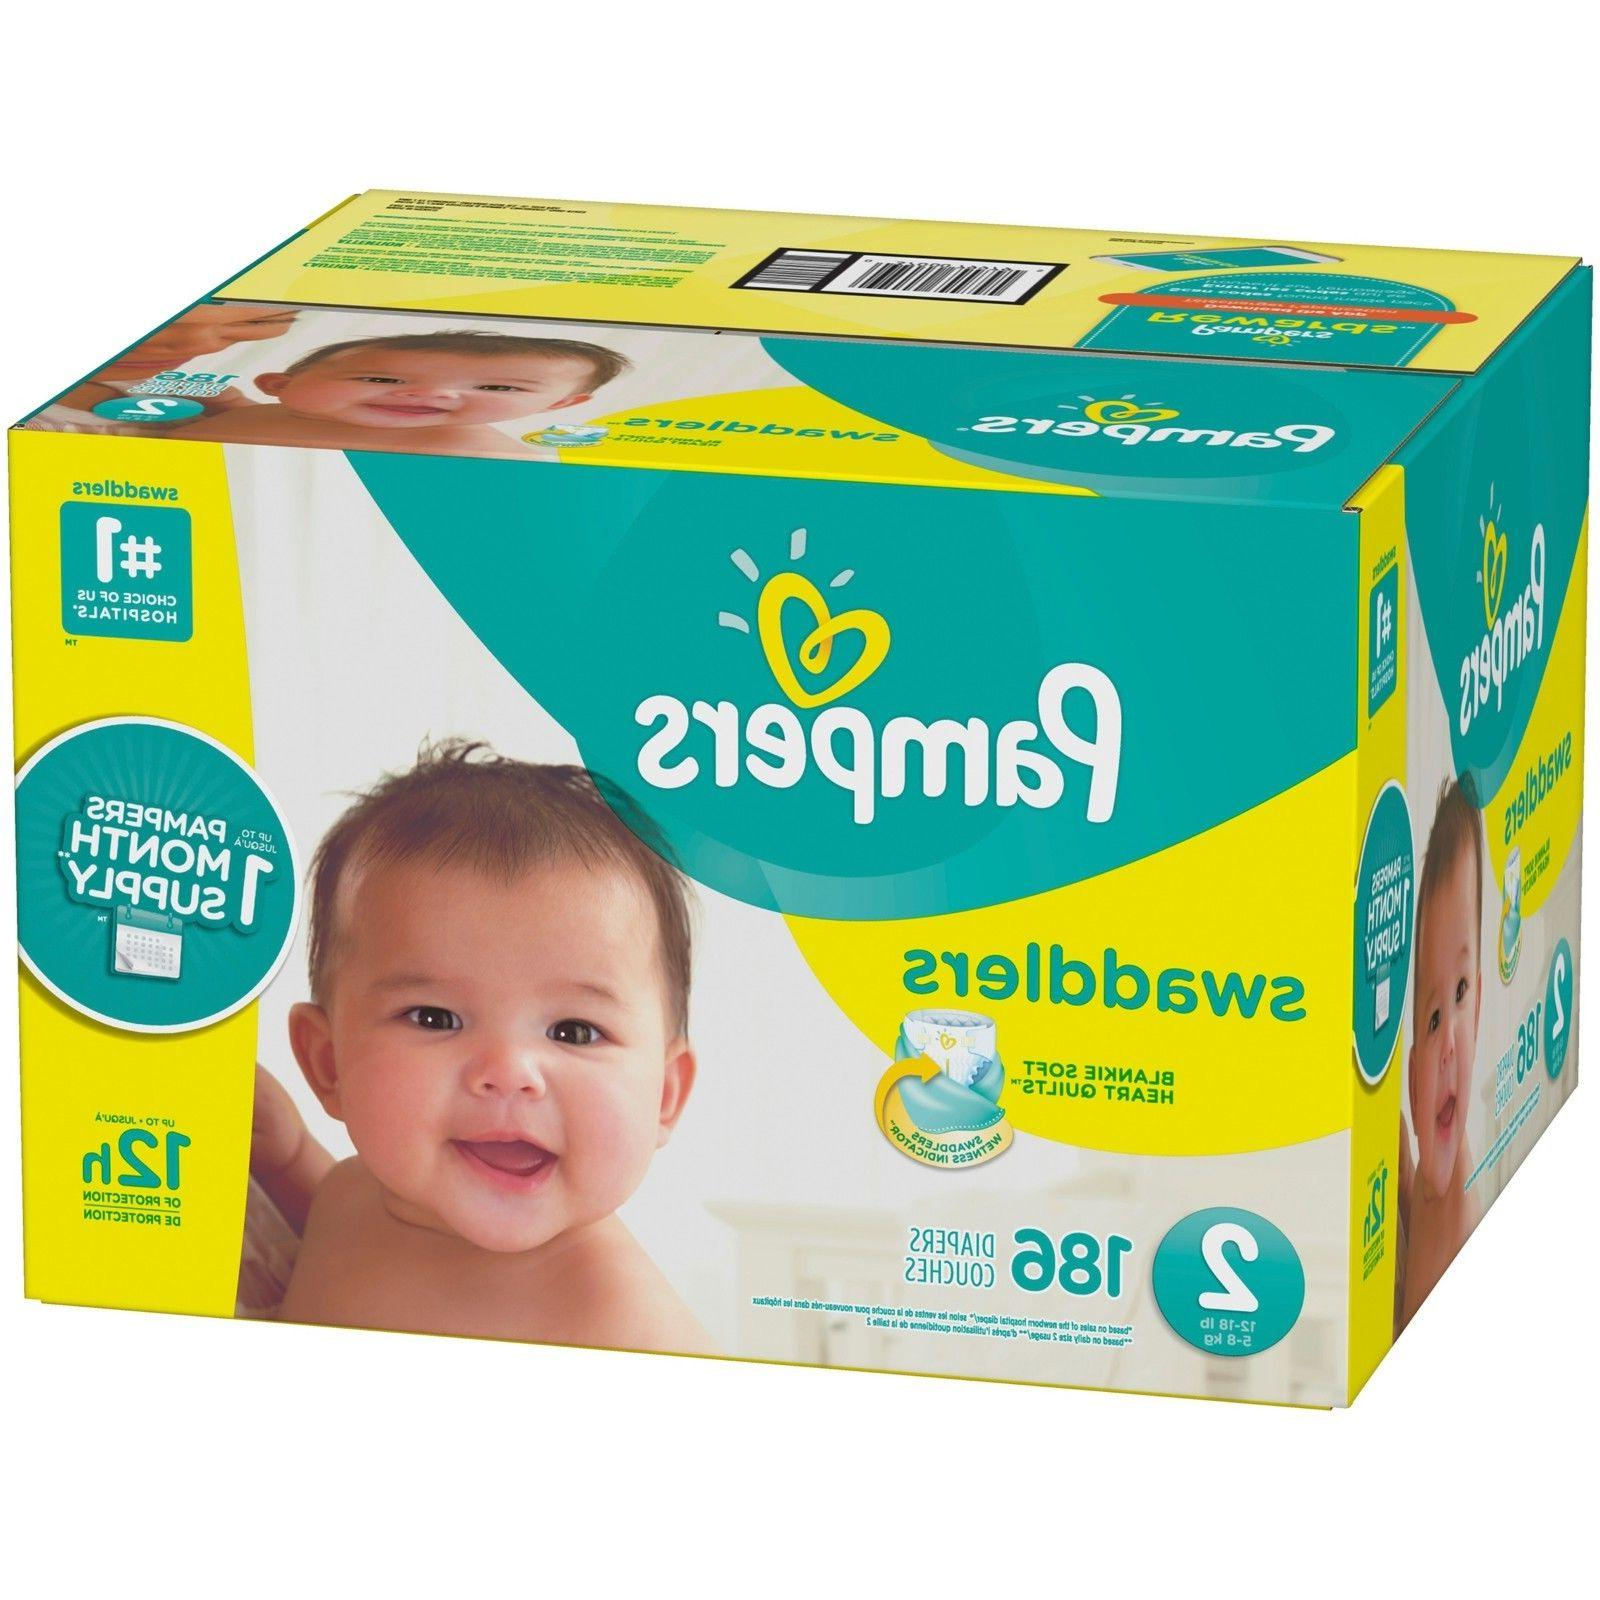 swaddlers disposable diapers size 2 186 count